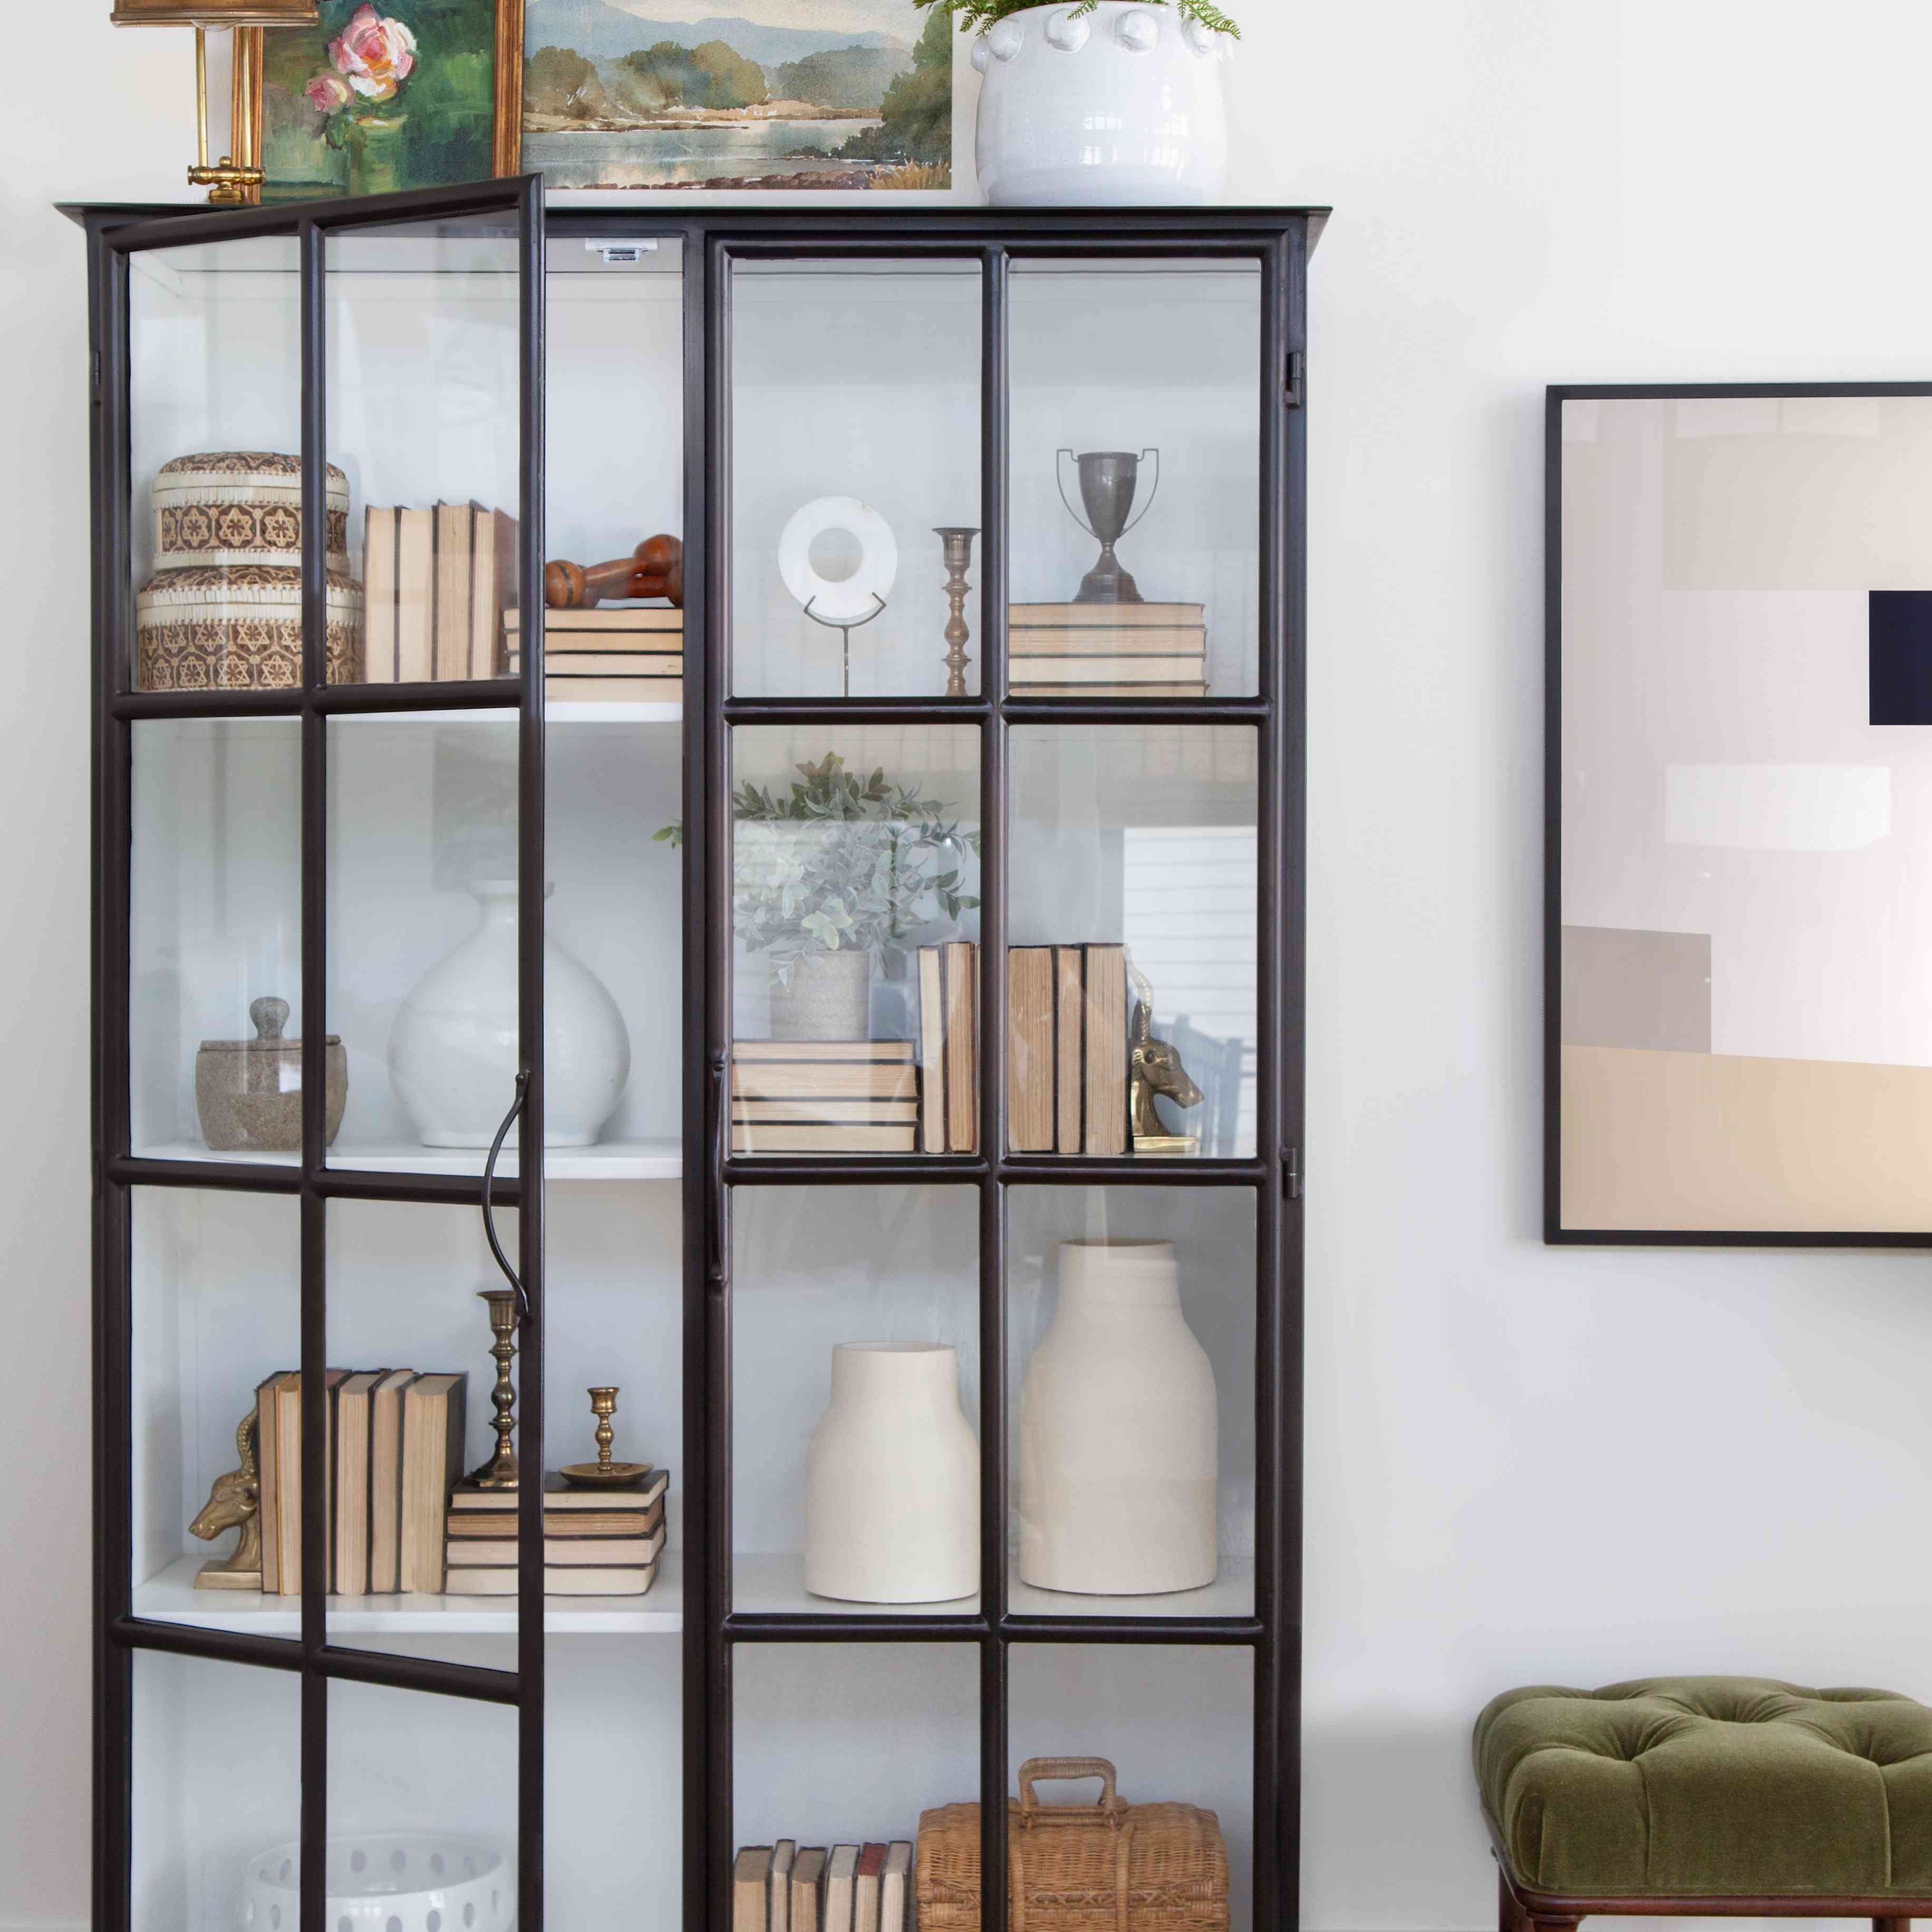 one room i'll never forget - fargo sunroom with bookcase and leaning art